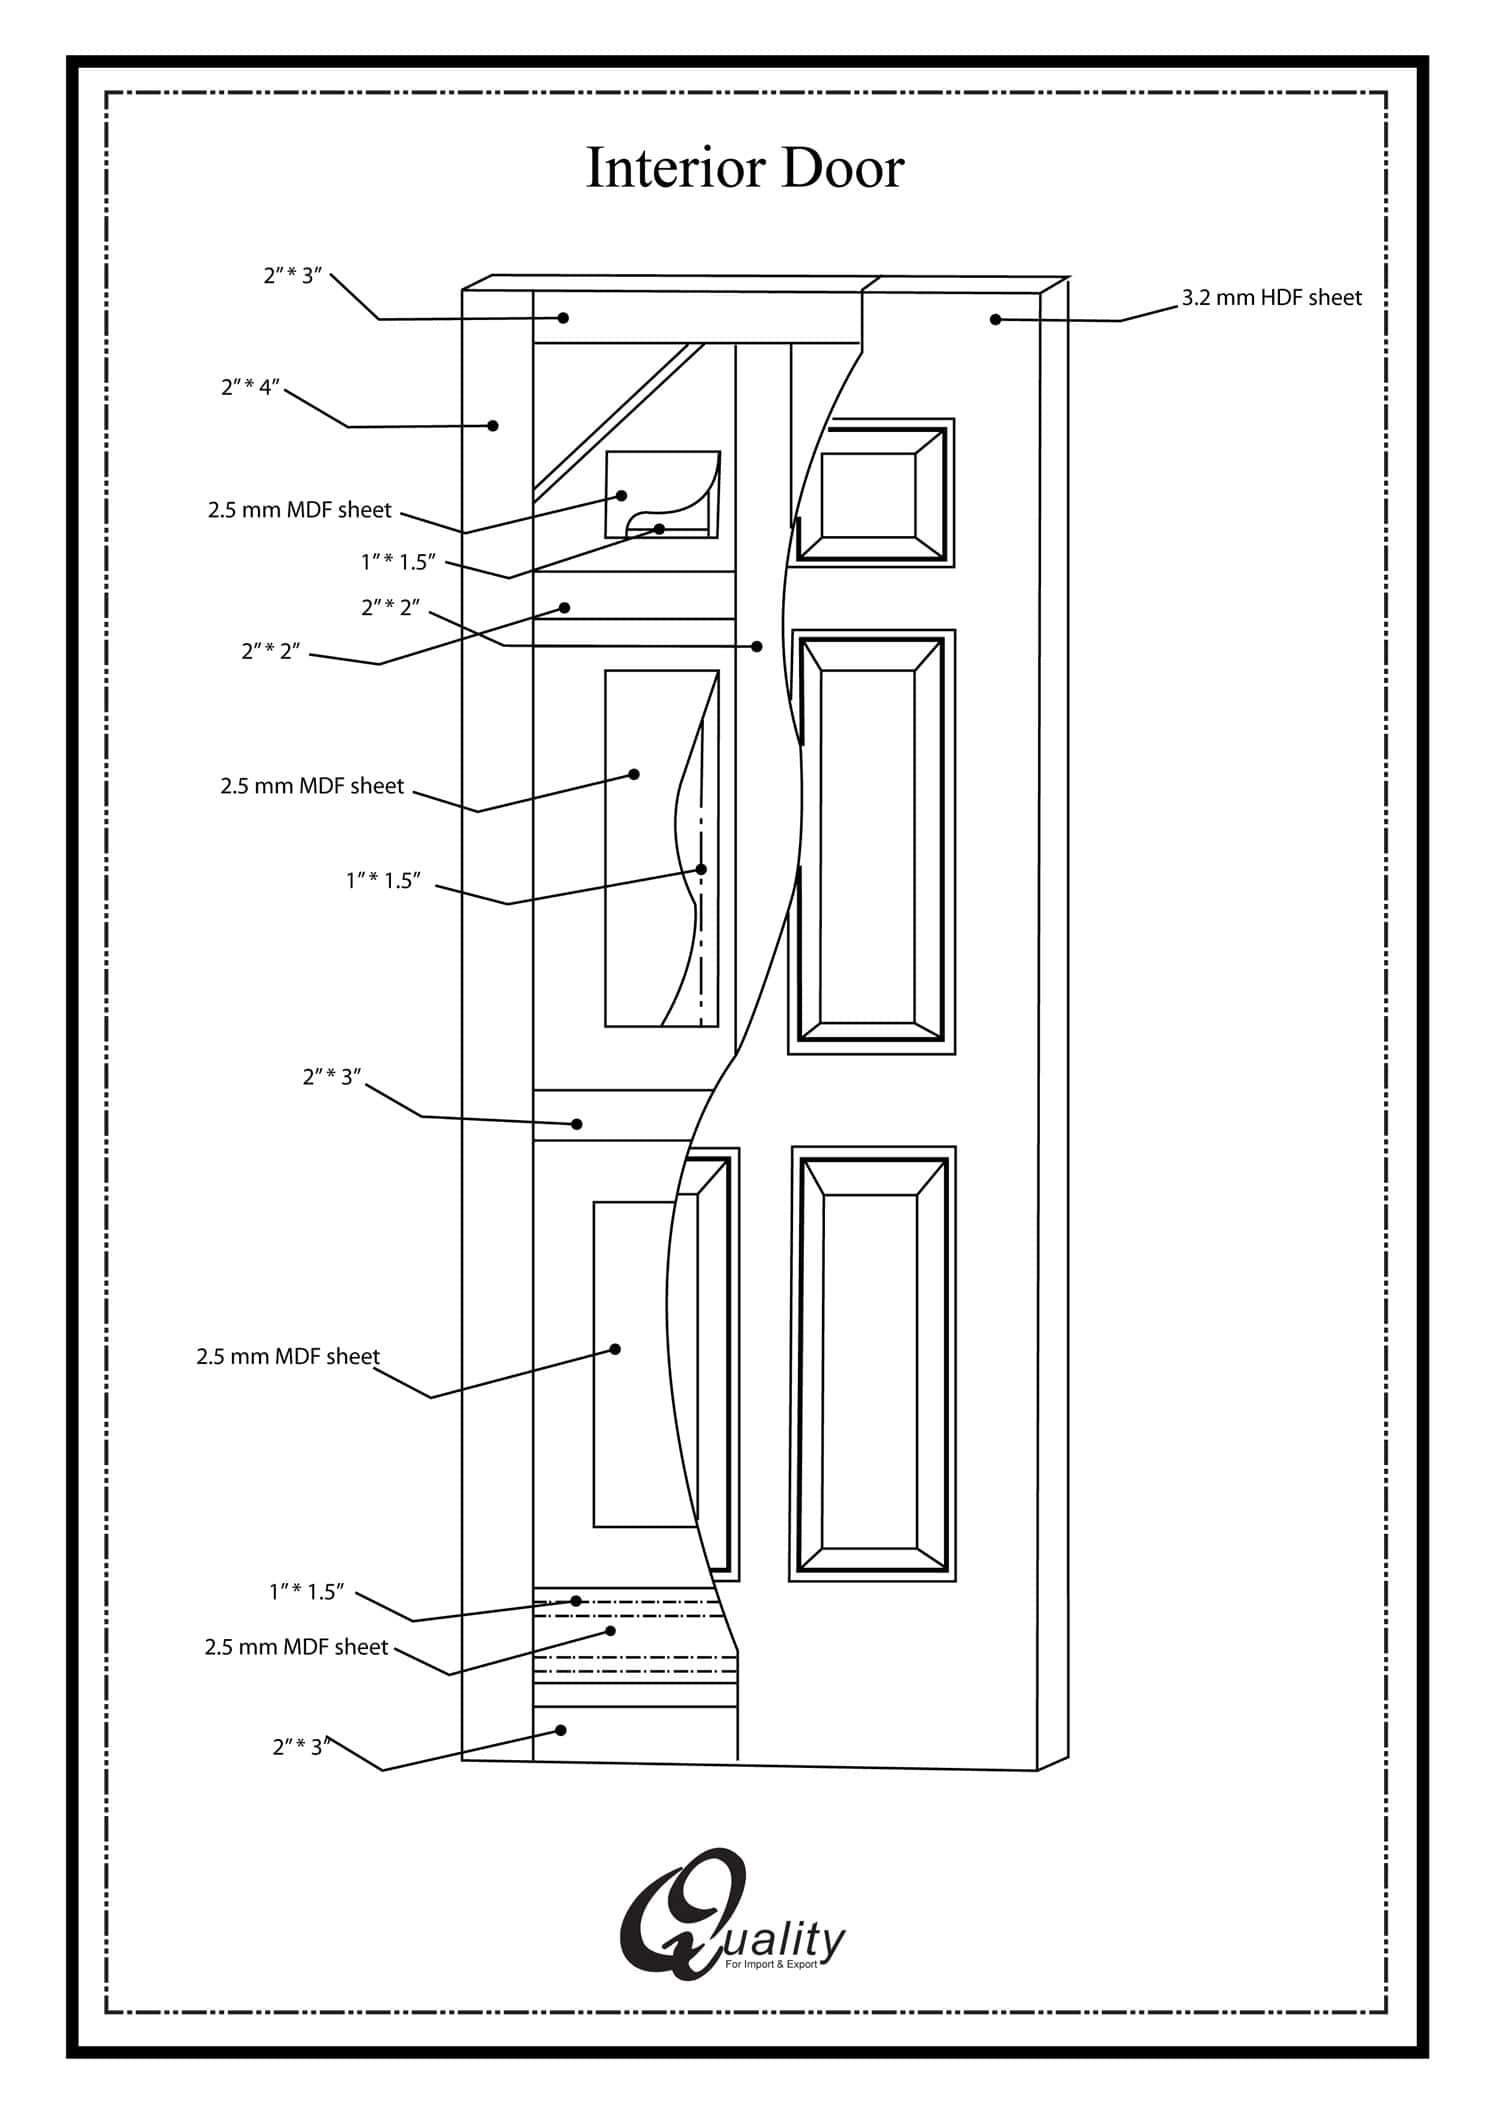 mdf wiring diagram